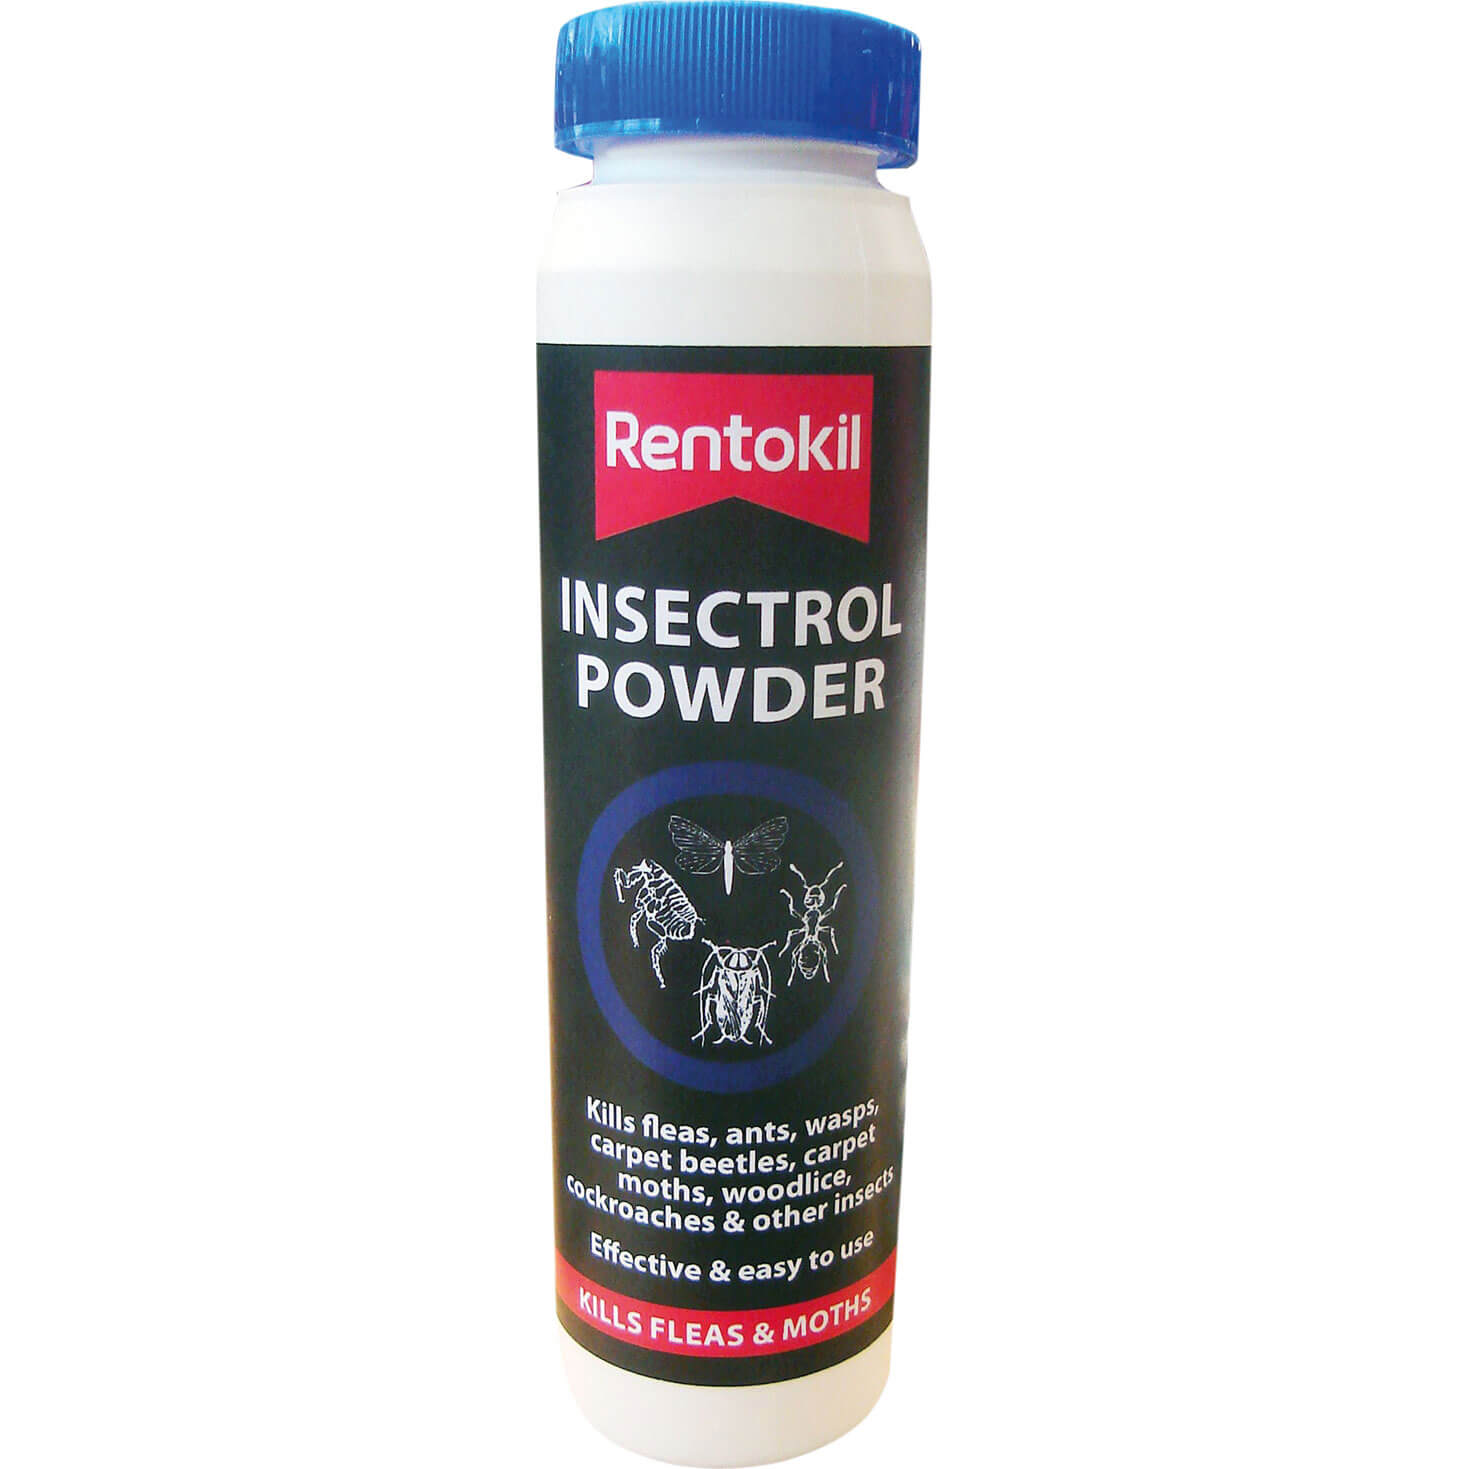 Image of Rentokil Insectrol Insect Powder